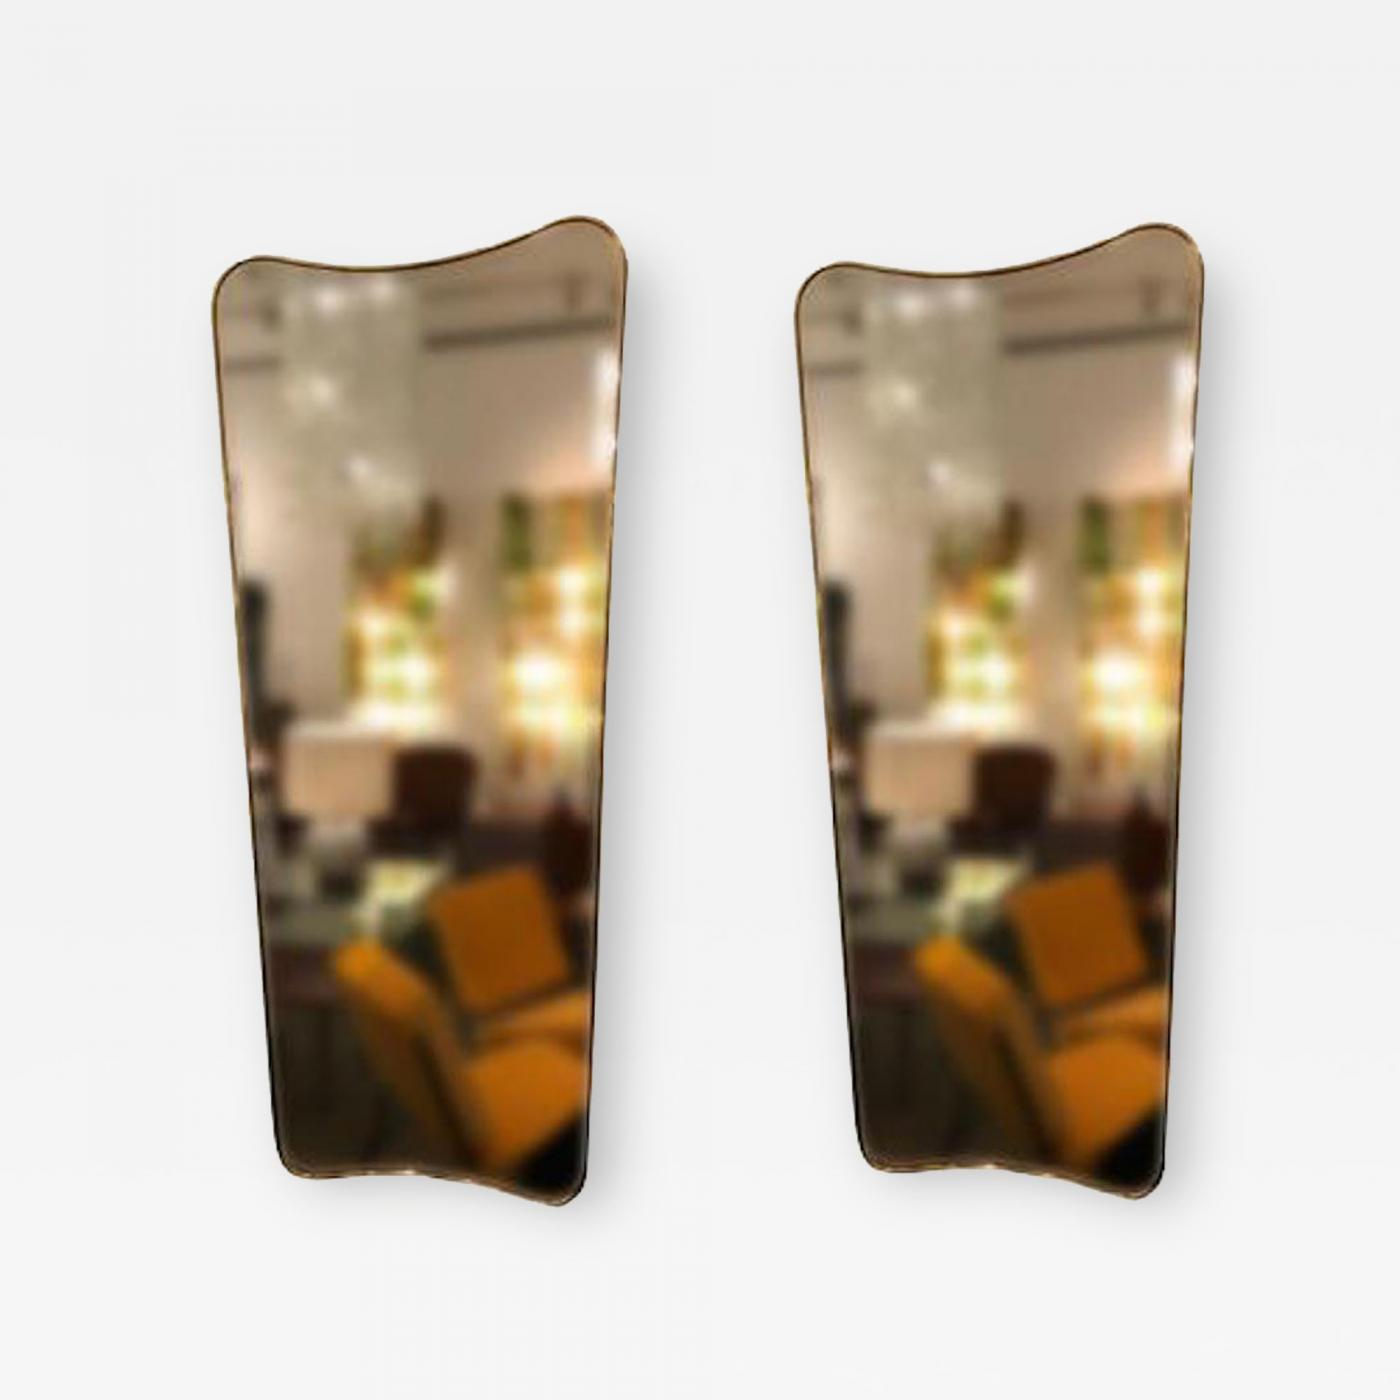 Large Wall Mirrors Gio Ponti Pair Of Large Scaled Mid Century Wall Mirrors In Brass In The Style Of Gio Ponti